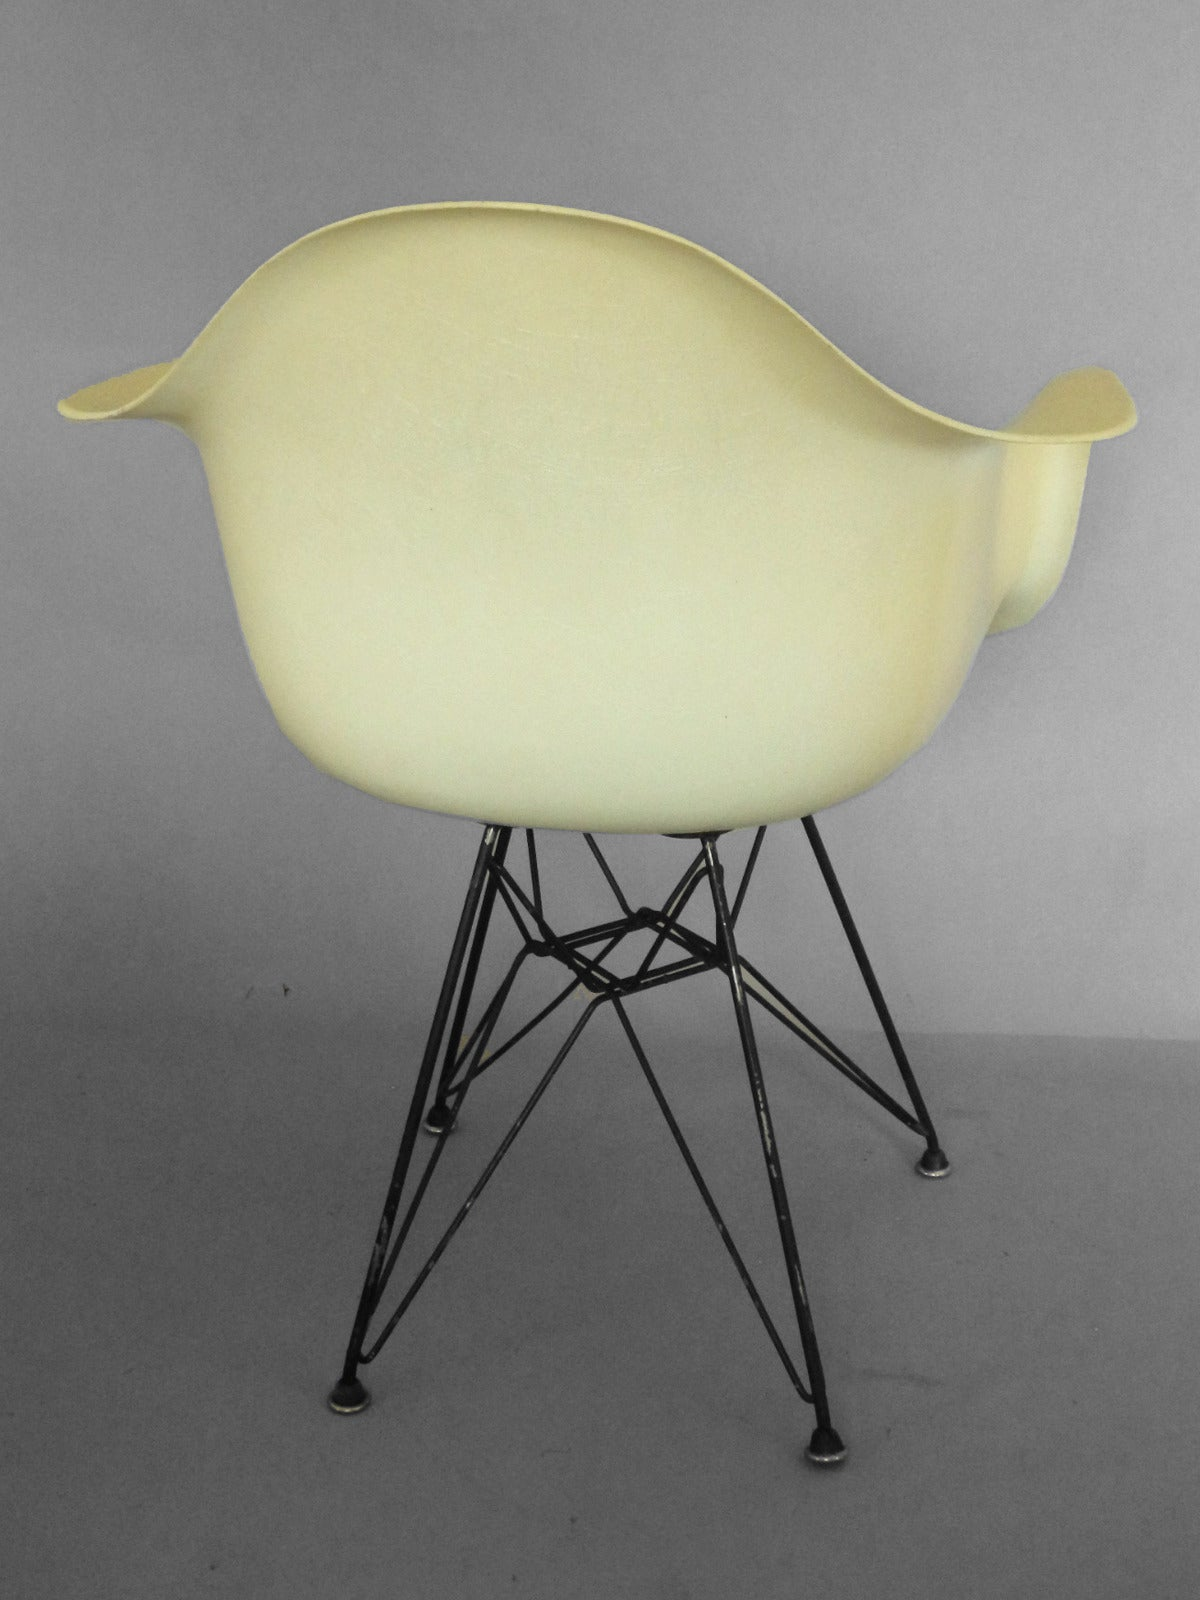 Early Biscuit Eames Zenith Ivory DAR Fiberglass Chair on